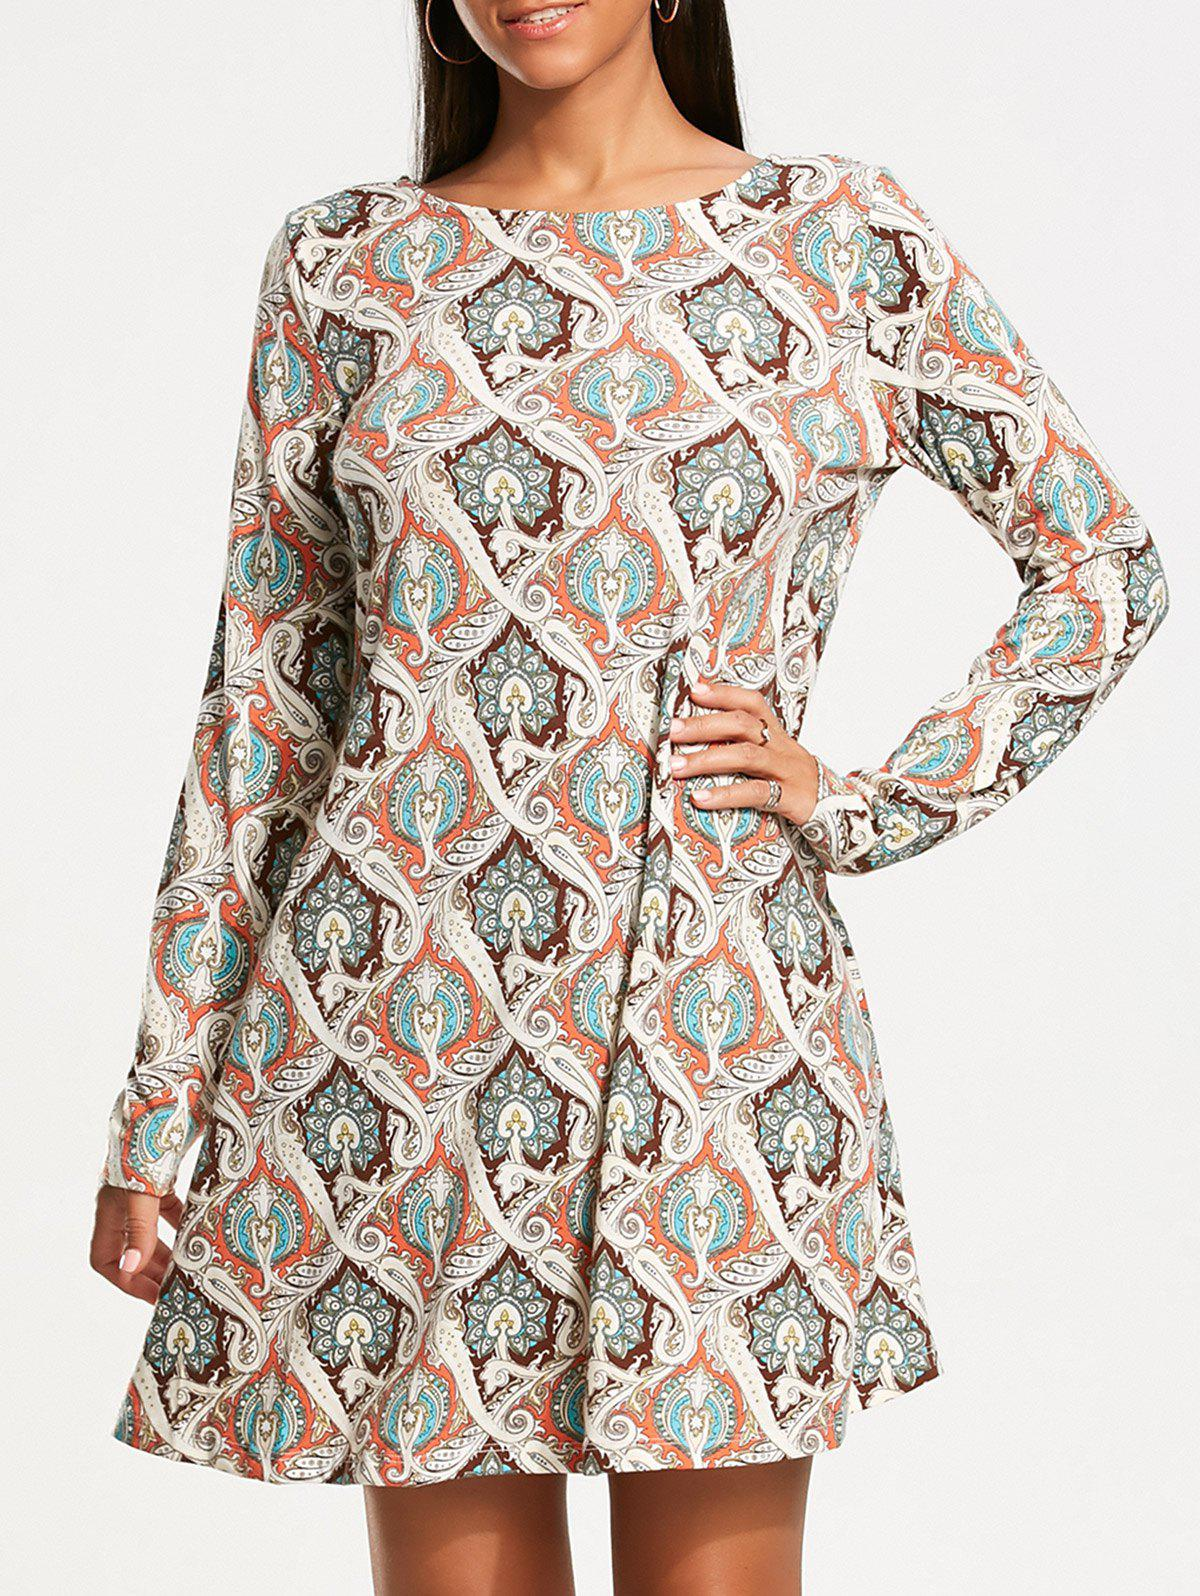 Vintage Print Long Sleeve Tunic Dress - COLORMIX XL